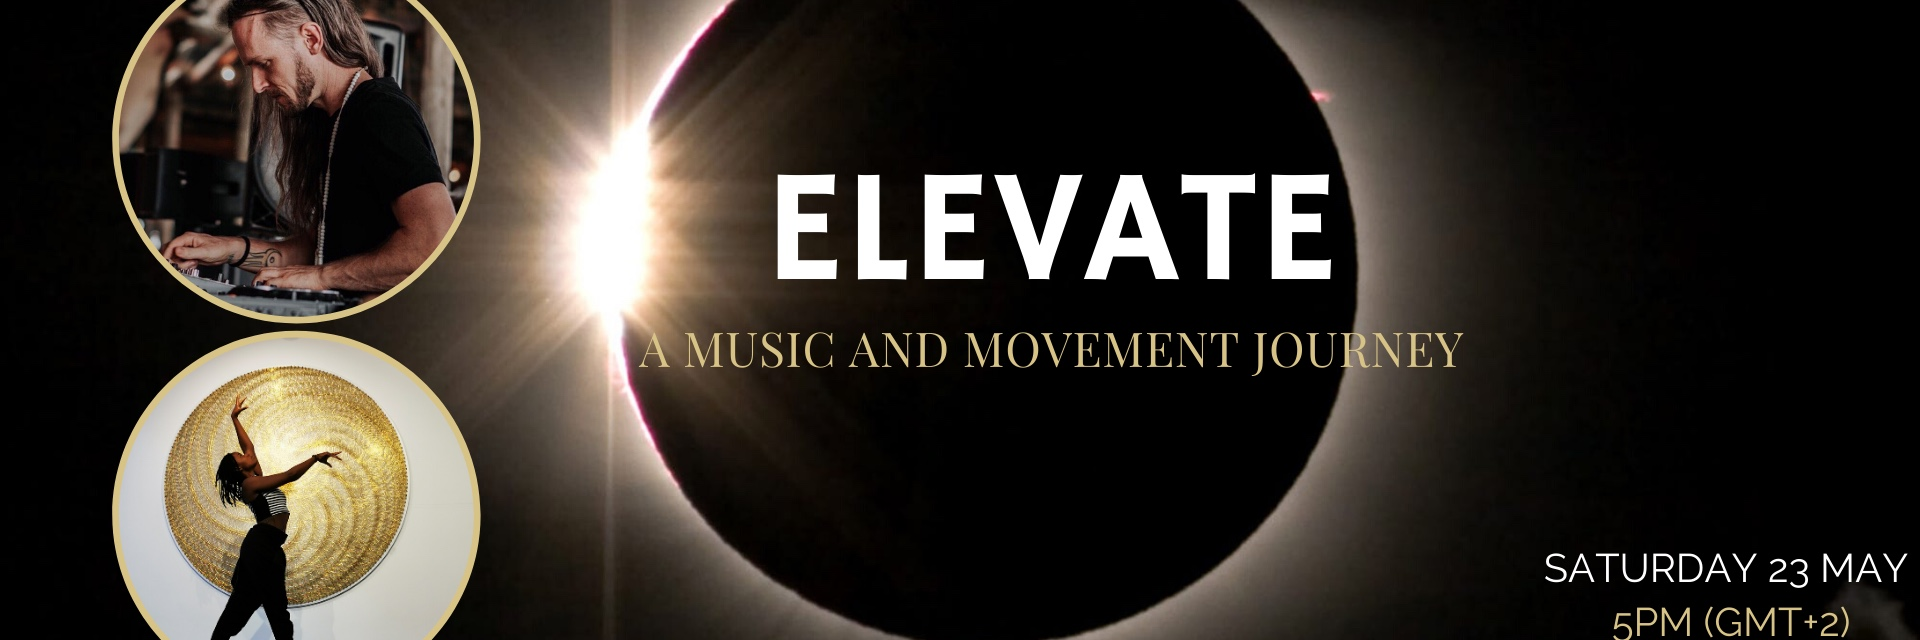 Elevate: Music and Movement